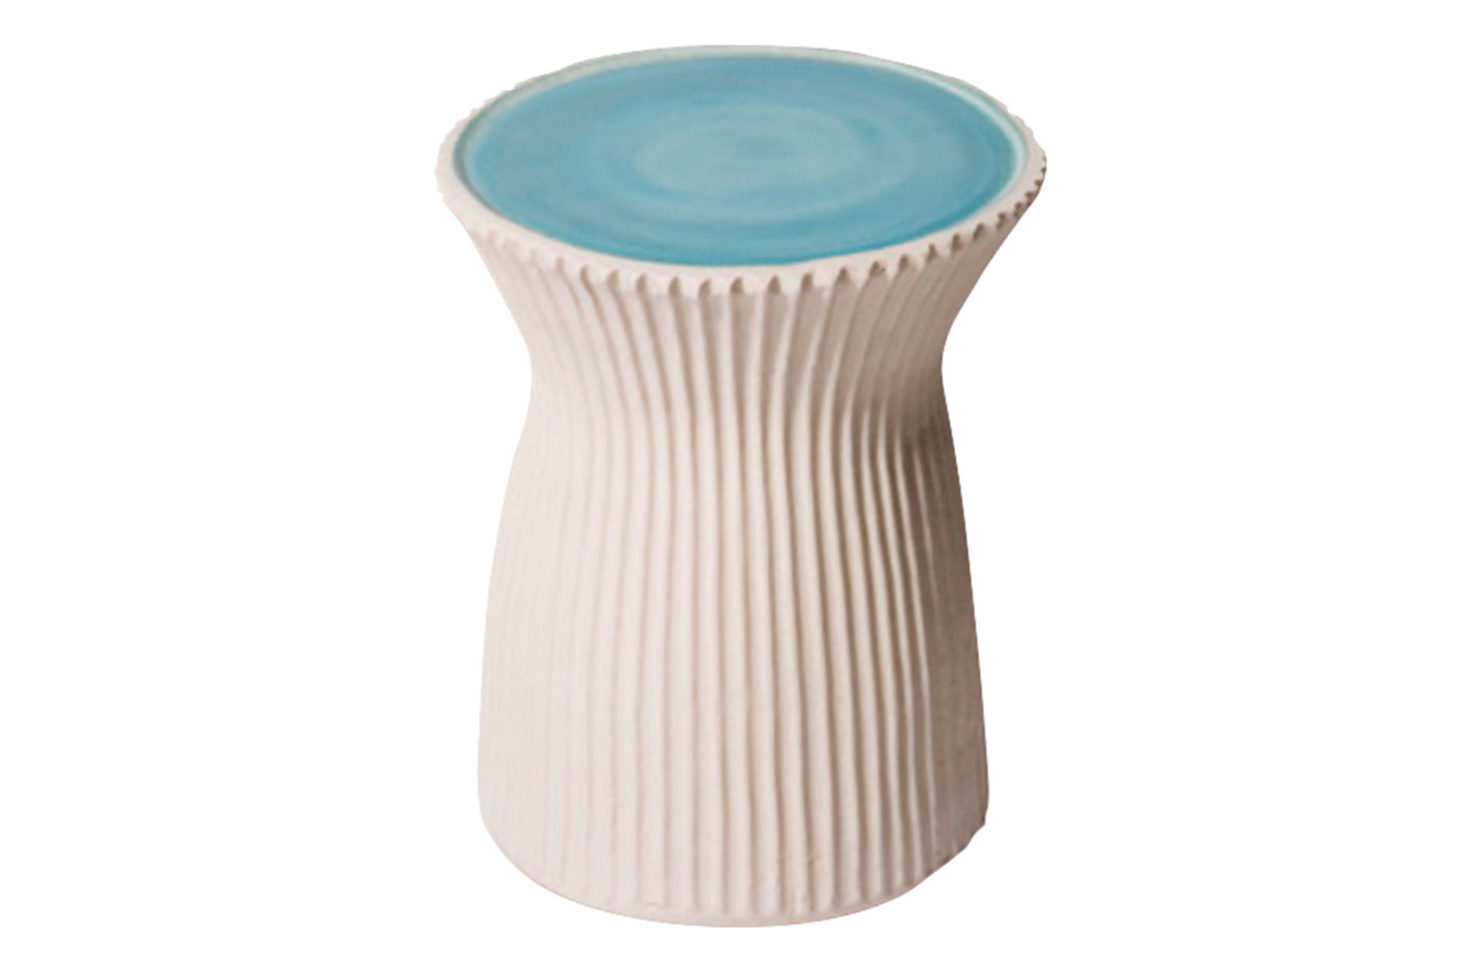 Ceramic ridged stool 308FT226P2TBSW